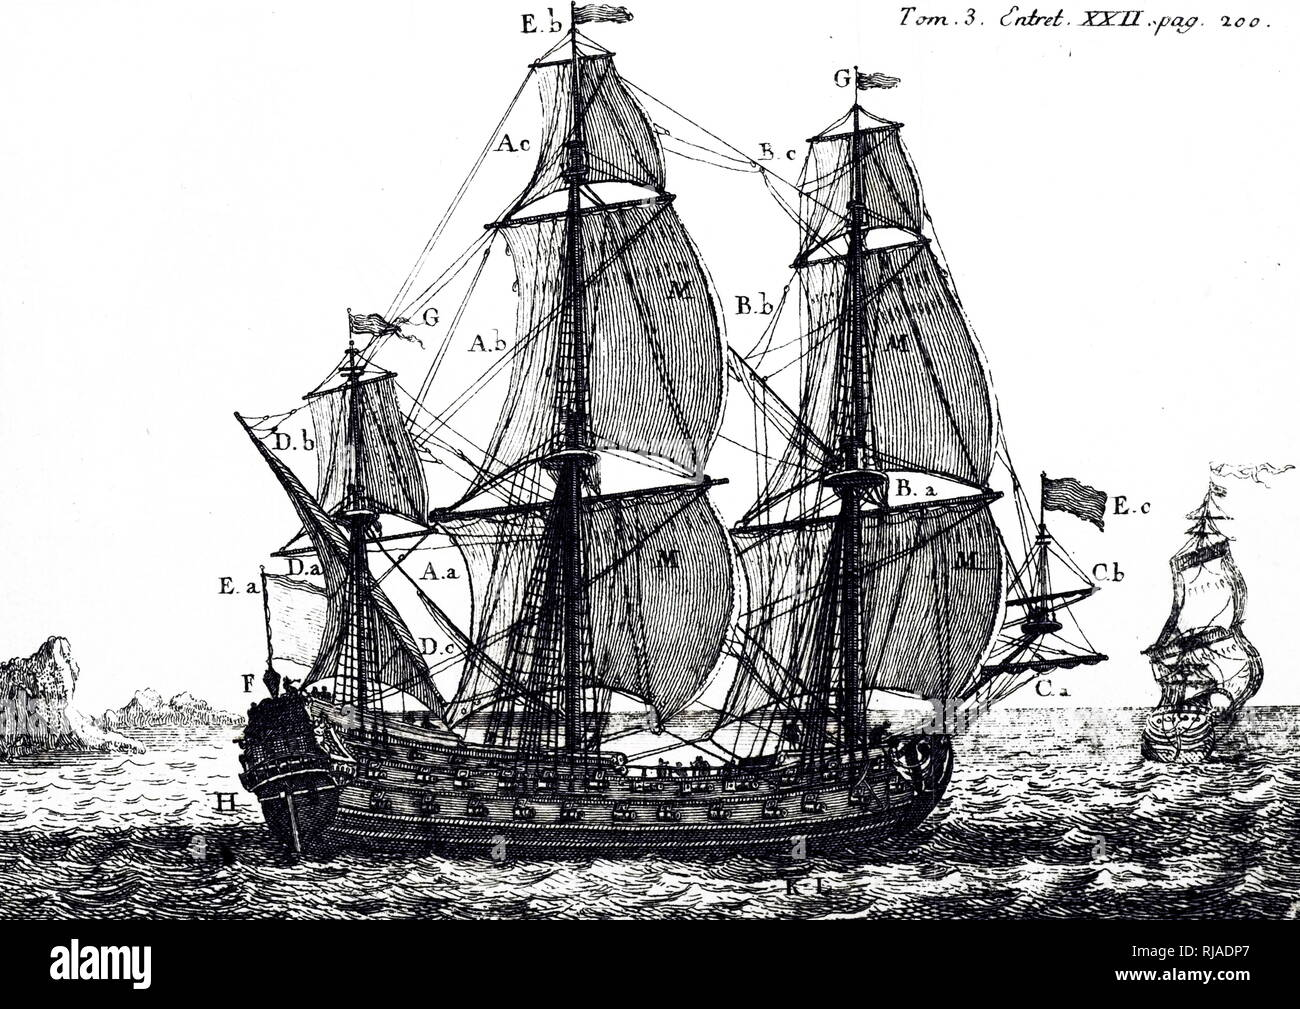 A woodblock engraving depicting a first-rate ship of the line carrying sail. Dated 18th century - Stock Image